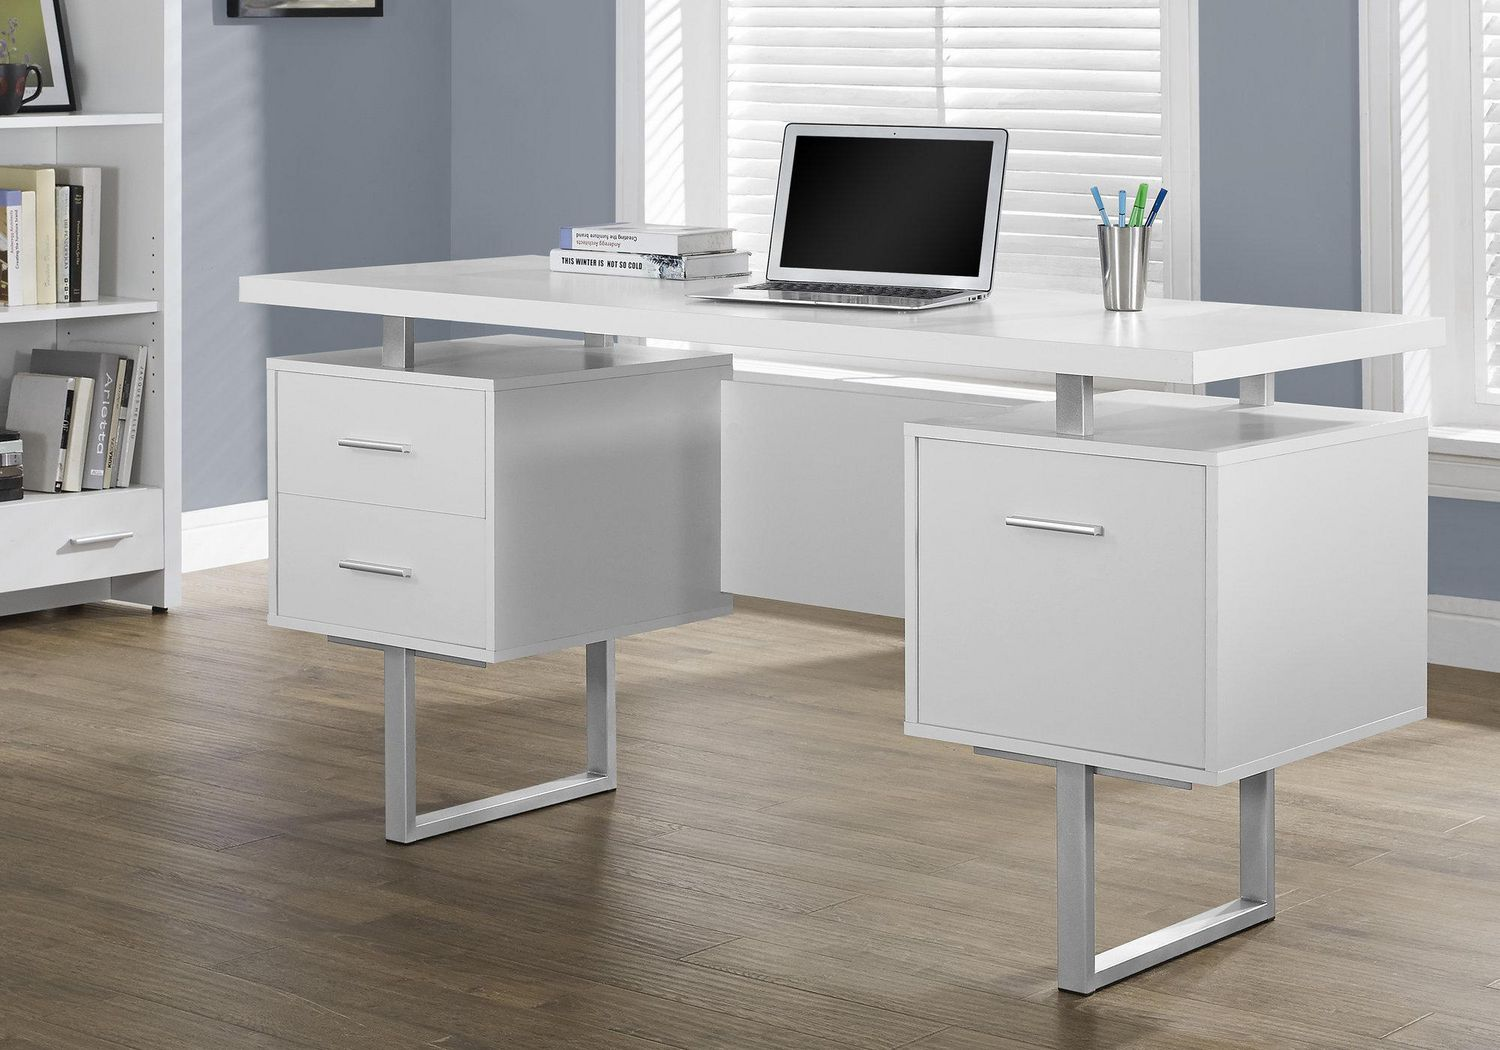 decoration taffette designs image home contemporary desks furniture office small of white quality